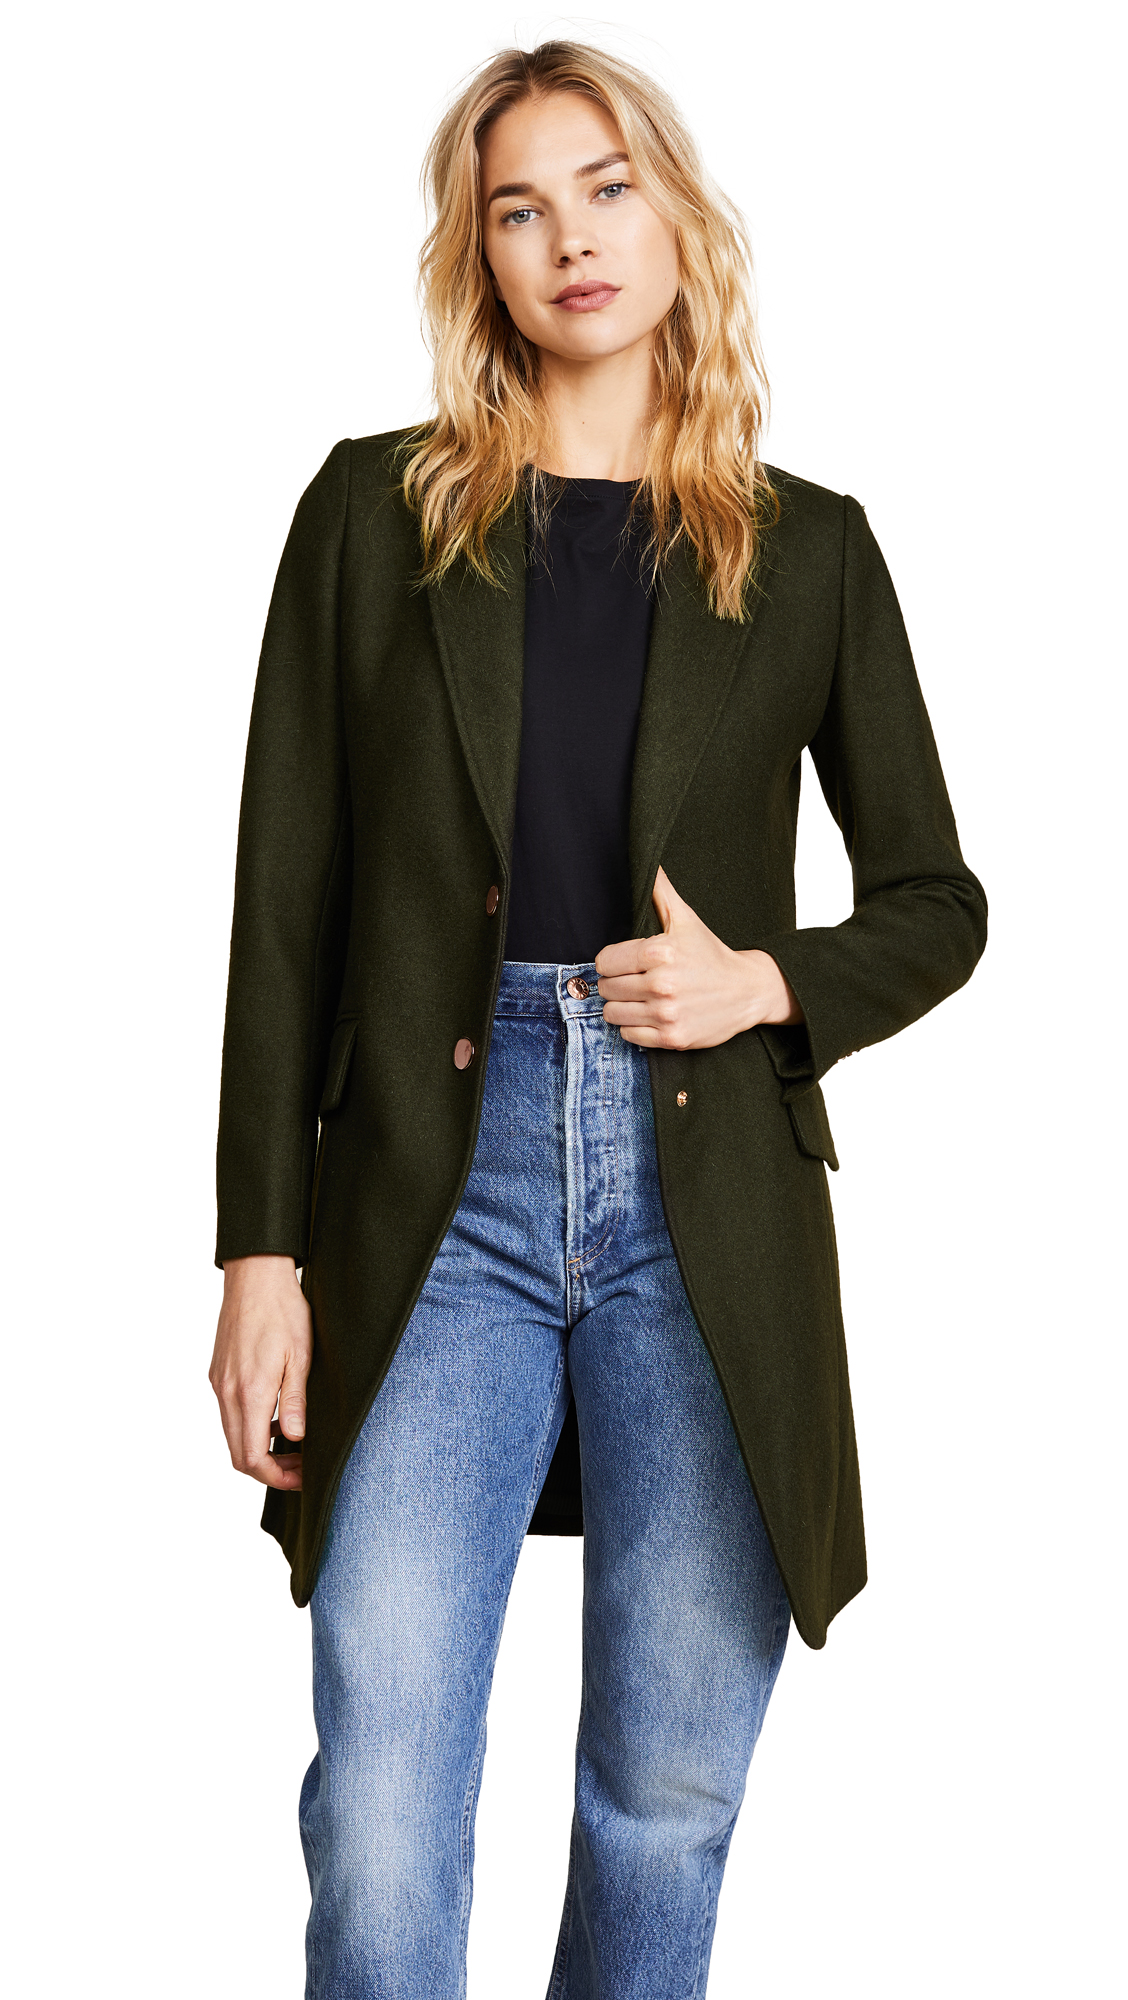 LAVEER Long Sharp Jacket - Hunter Green